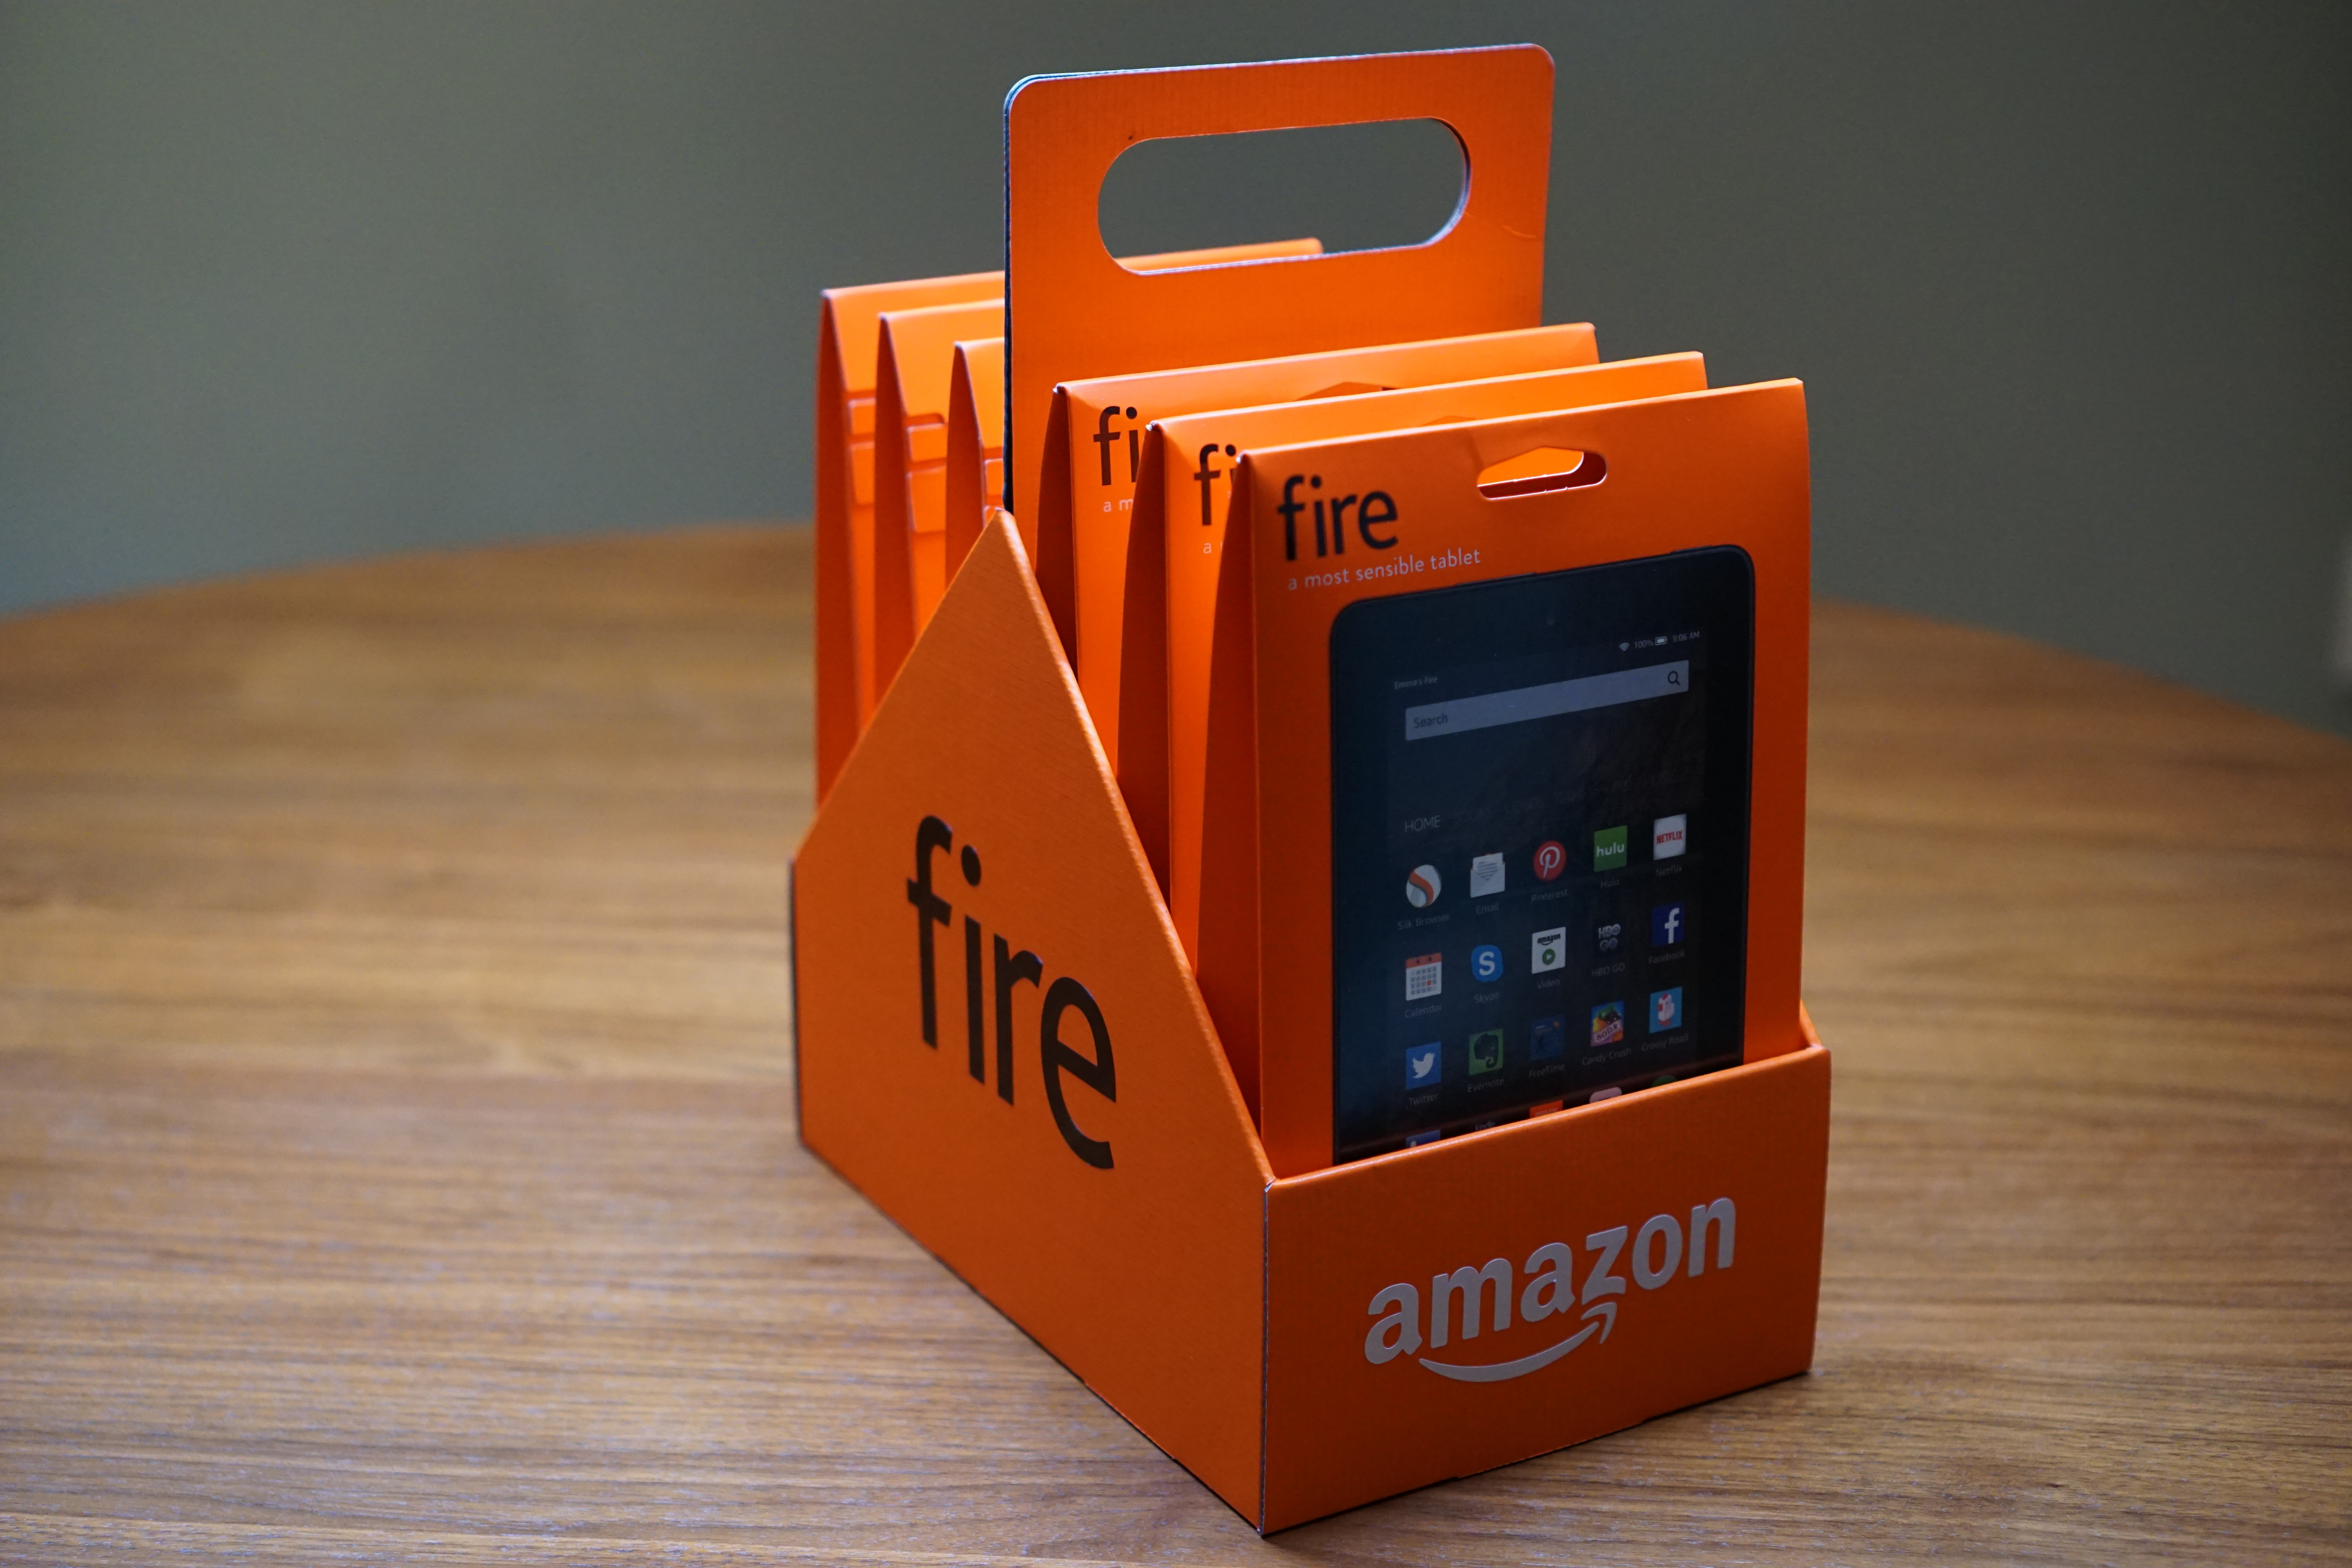 Amazon Announces Its New $50 Fire Tablet (With $250 6-Pack